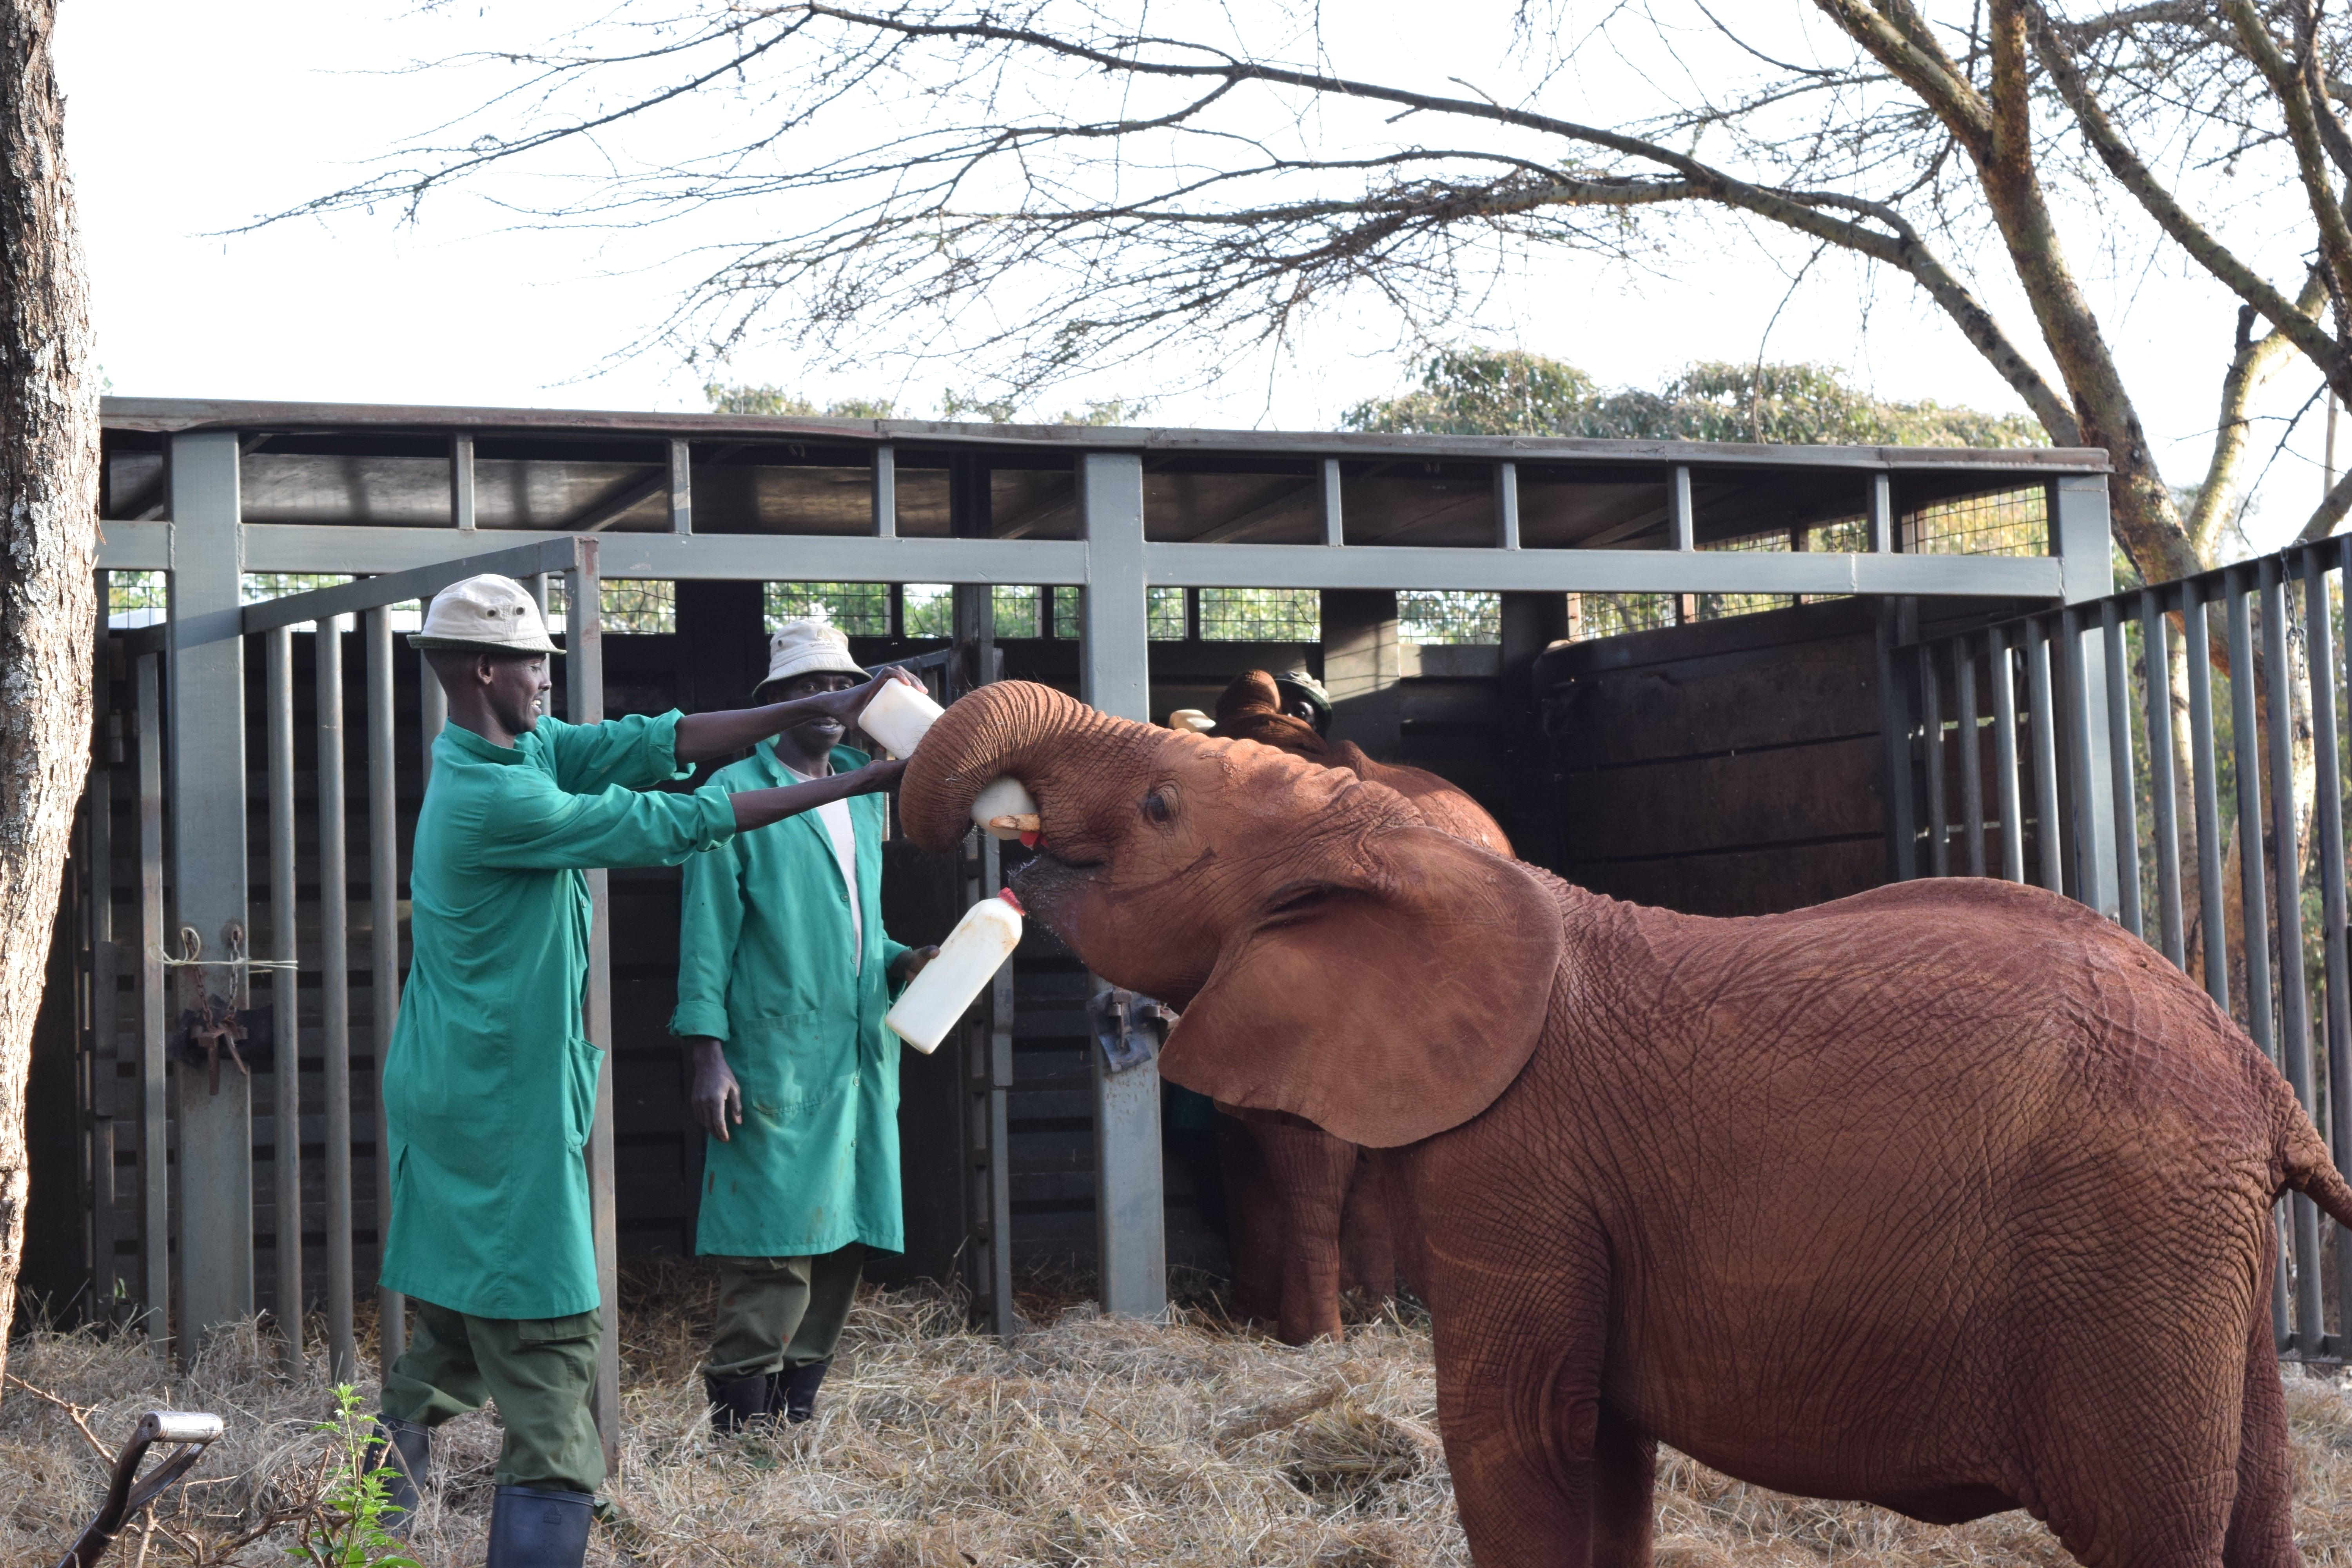 David Sheldrick Wildlife Trust - Adopting an elephant at DSWT - How To Spend 24 Hours In Nairobi, Kenya - Hemingways Nairobi - What to do in Nairobi - Nairobi, Kenya - Kenya Safari - Kenya Safari Tours - Safari Kenya - Safari Trips In Kenya - Trip To Kenya - Kenyan Safari - How To Plan A Safari - Kenya Safari Guide - Kenya Wildlife - Kenya Trip - Travel To Kenya - Guide To Kenya